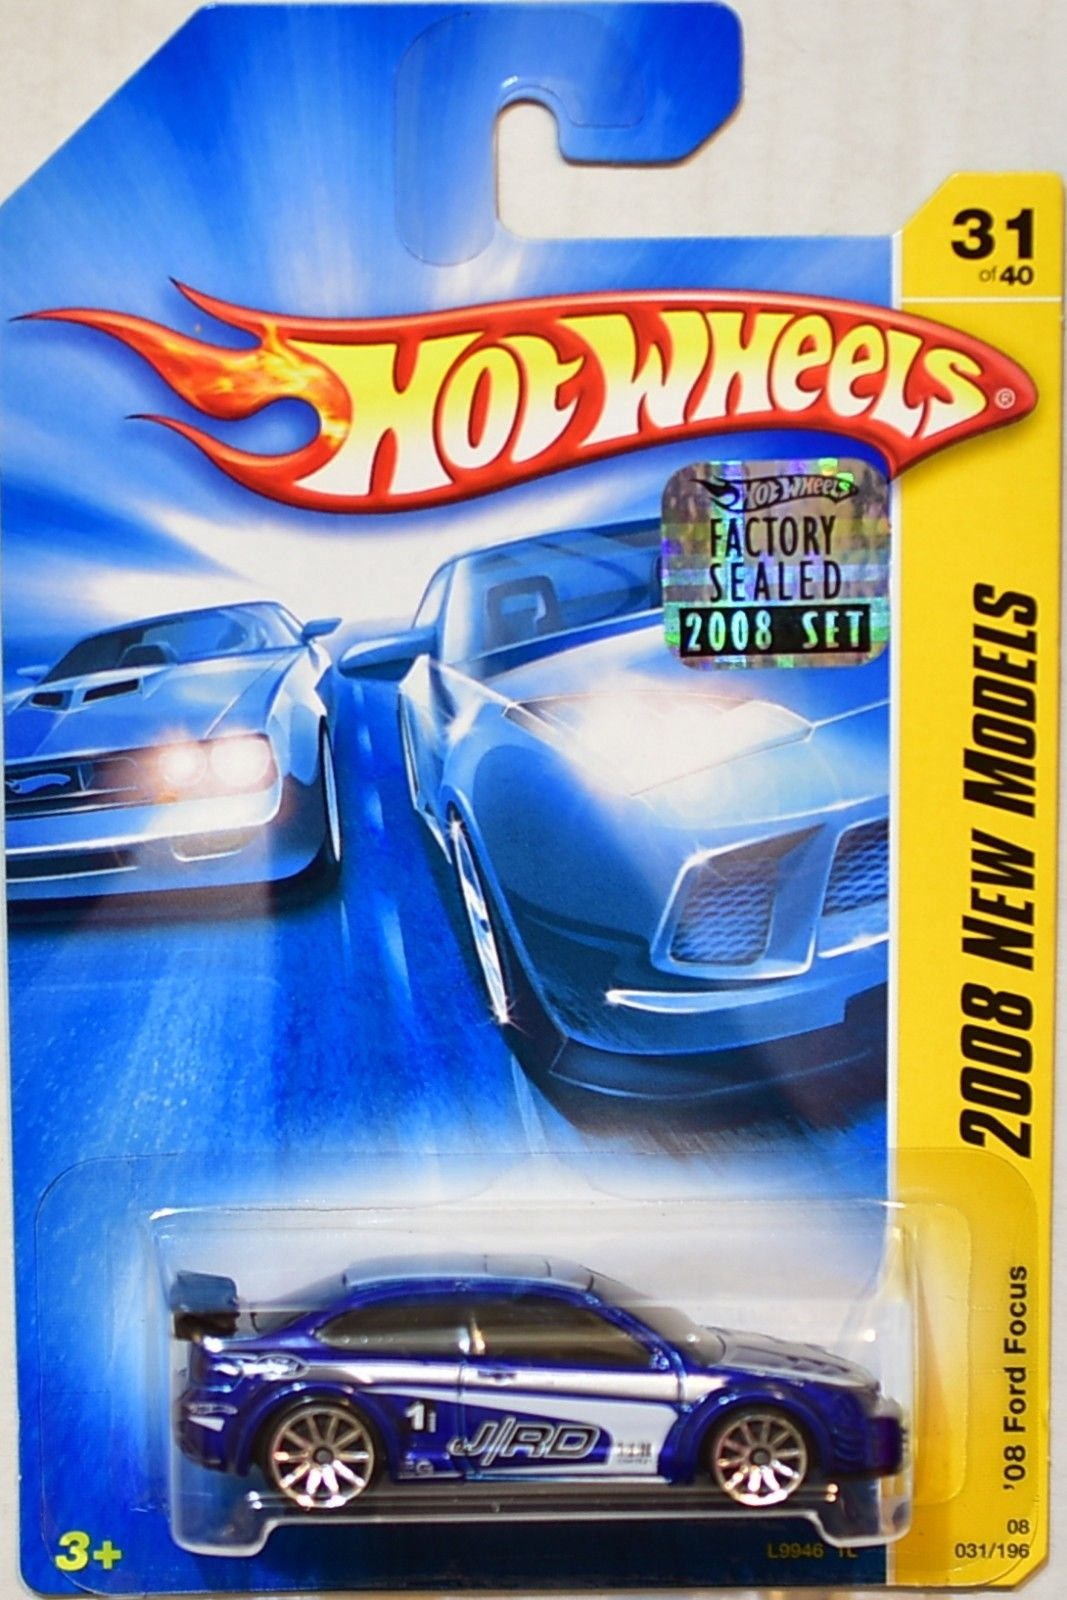 HOT WHEELS 2008 NEW MODELS '08 FORD FOCUS #31/40 BLUE FACTORY SEALED